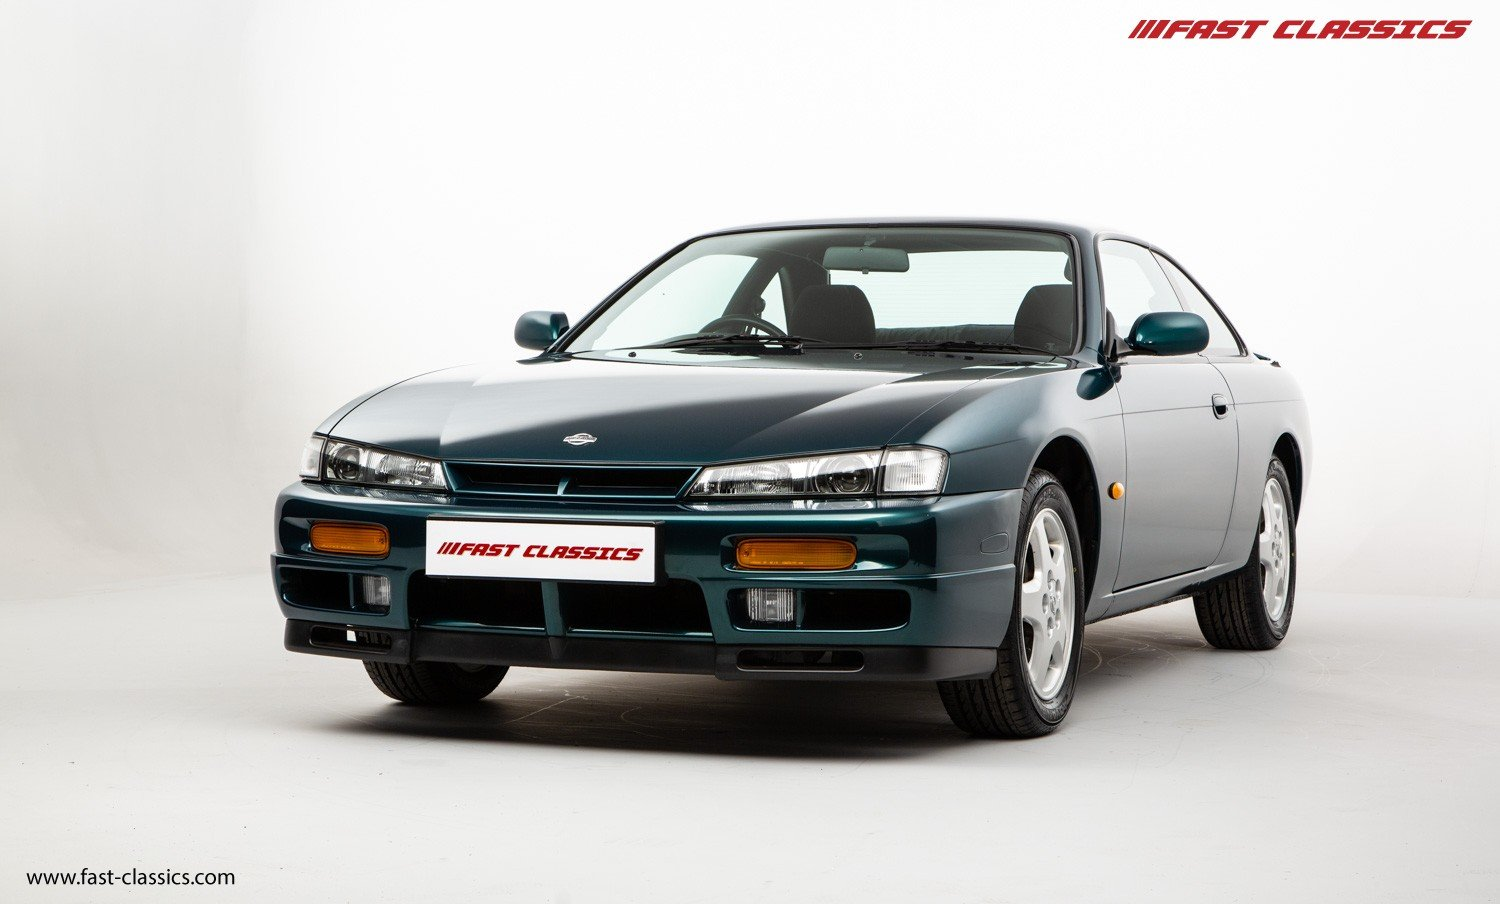 1999 NISSAN 200SX // UK SUPPLIED // 18K MILES // FAMILY OWNED For Sale (picture 2 of 6)